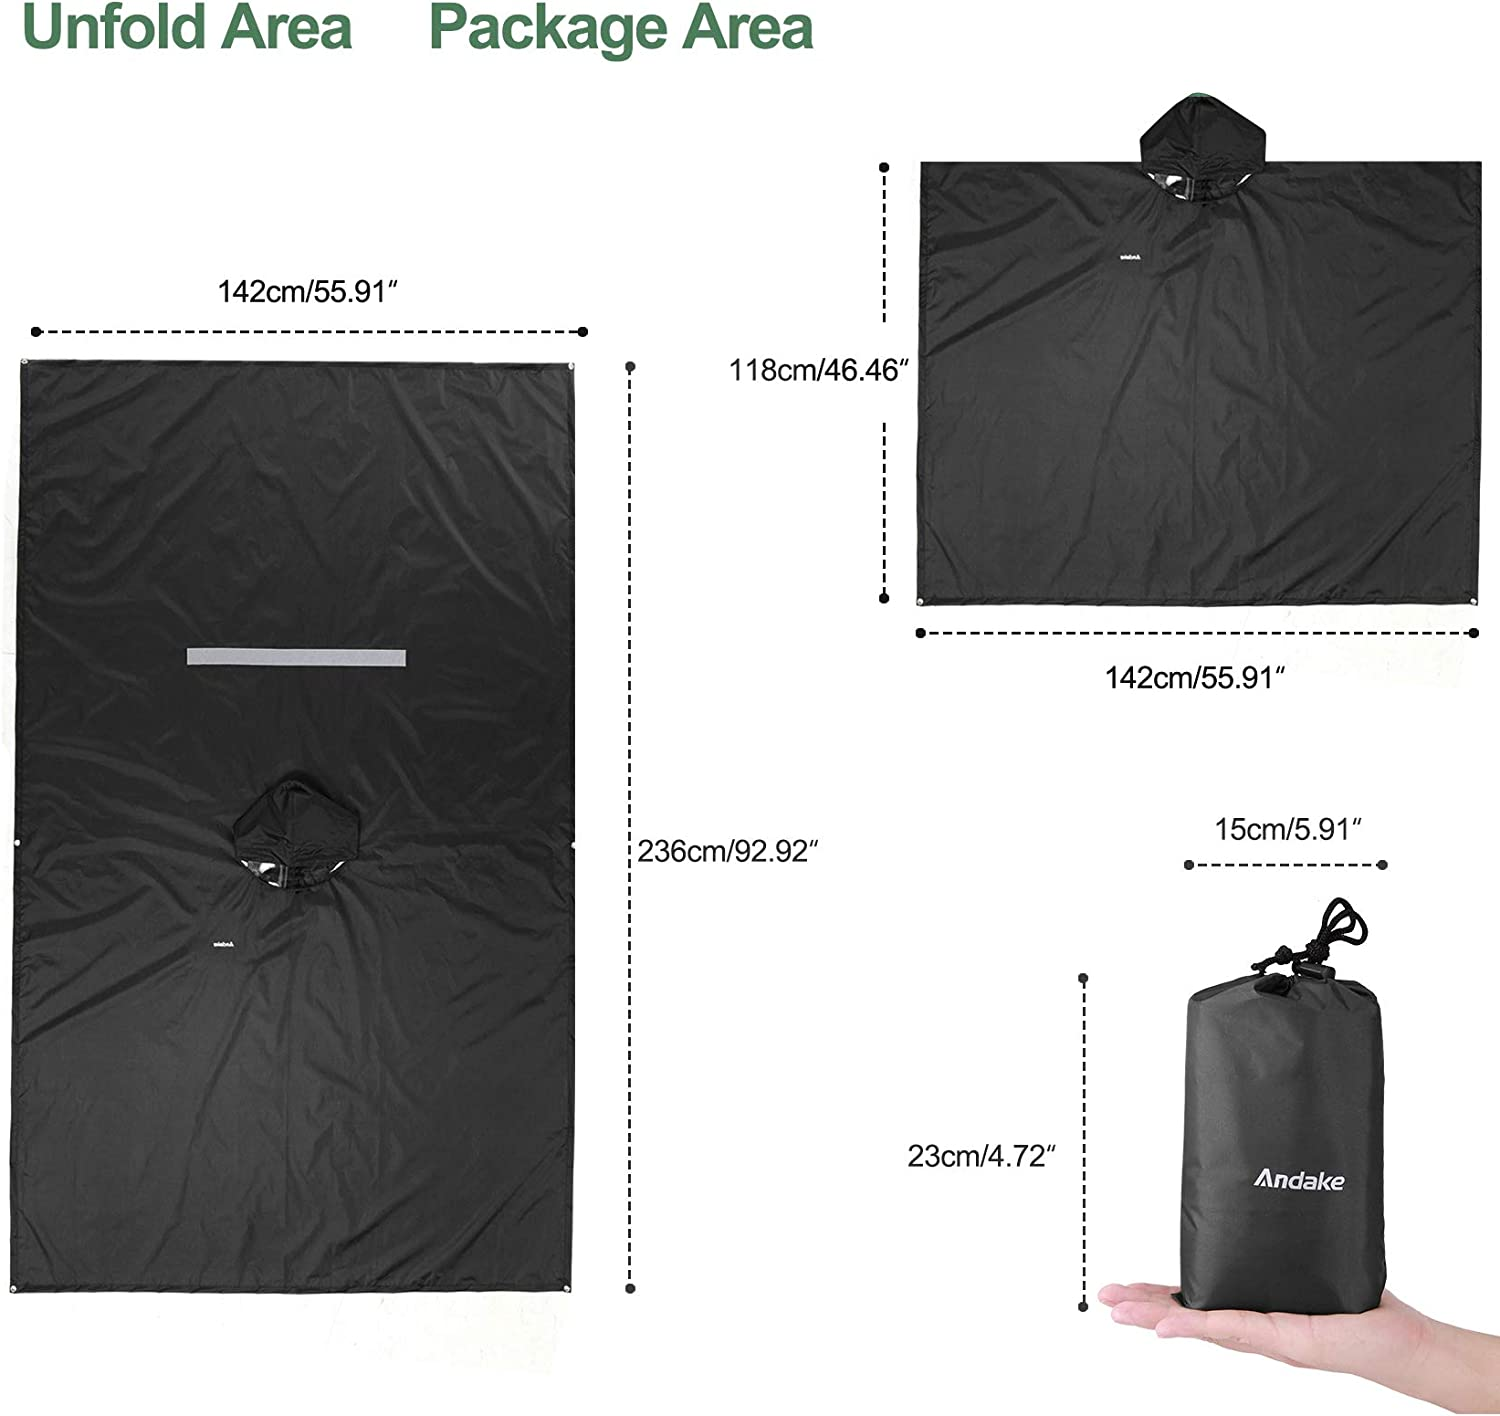 Hiking Women Men Unisex Raincoat Waterproof Windproof Anti-Wrinkle Reusable Poncho for Camping Outdoor and Daily use. Andake Rain Poncho